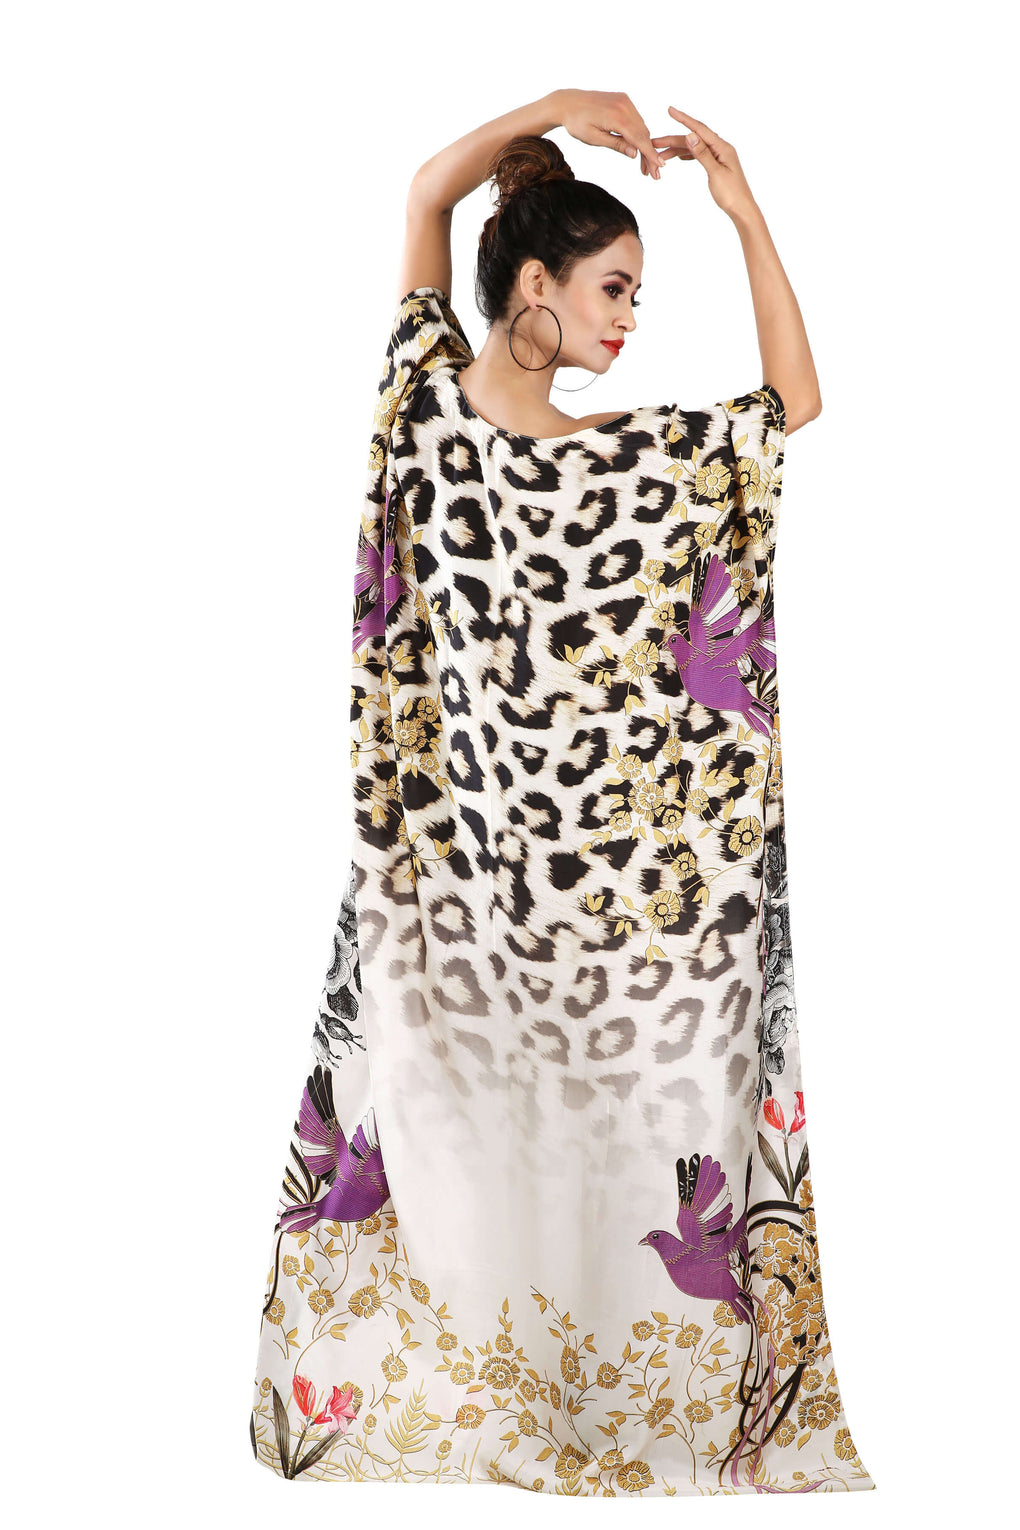 Boat neck Maxi Dress Plus Size Animal Print kaftan